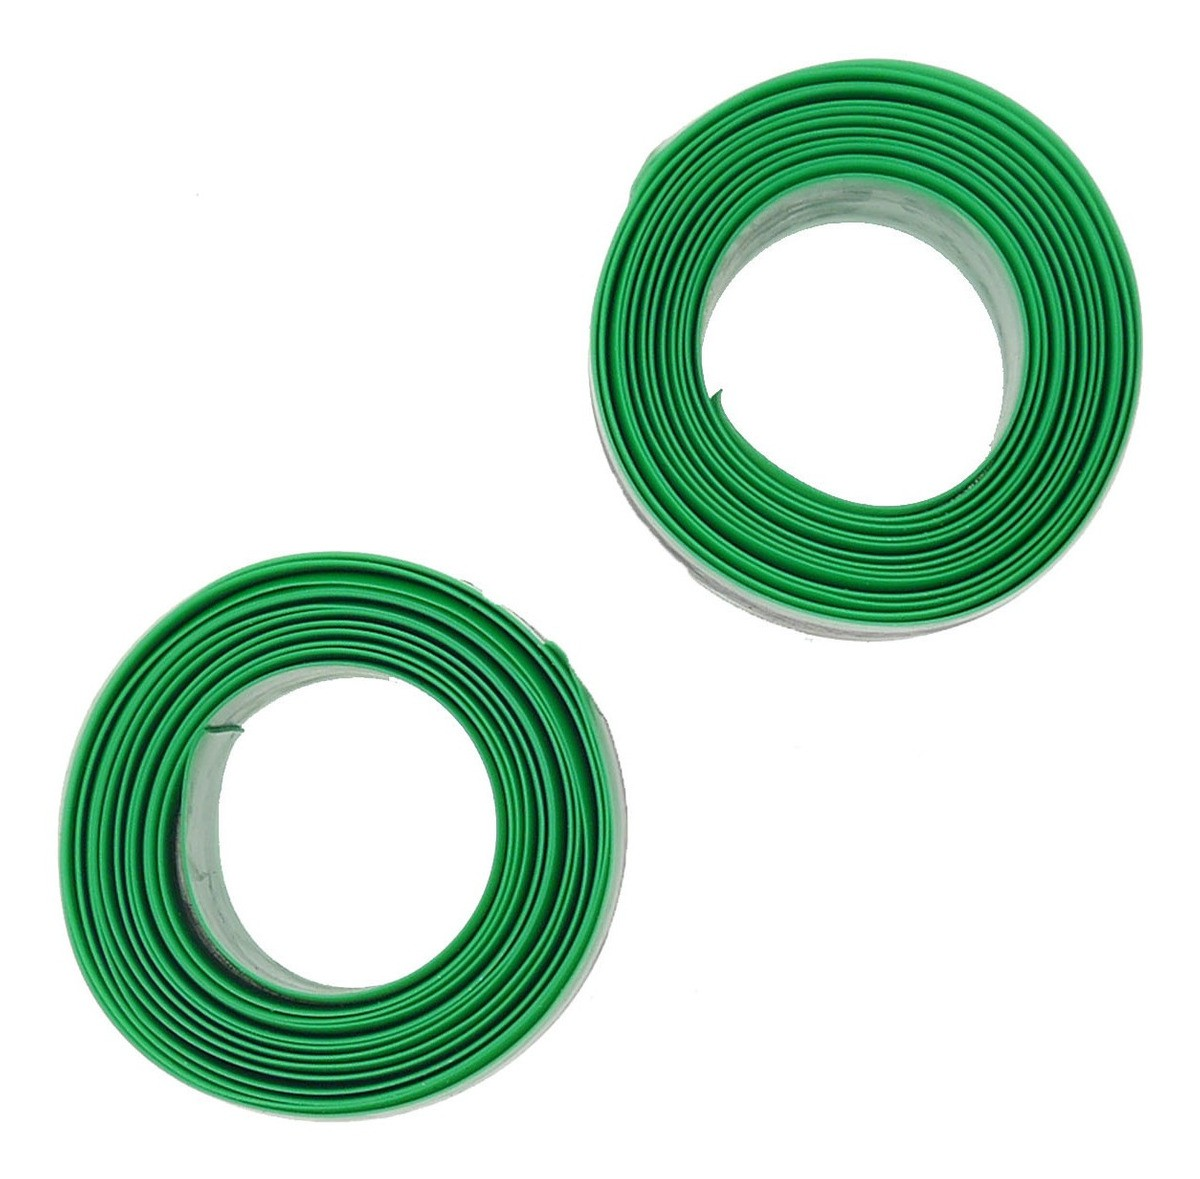 Fita Anti furo Safetire 35mm Verde Aro 26 27,5 29 Bicicleta